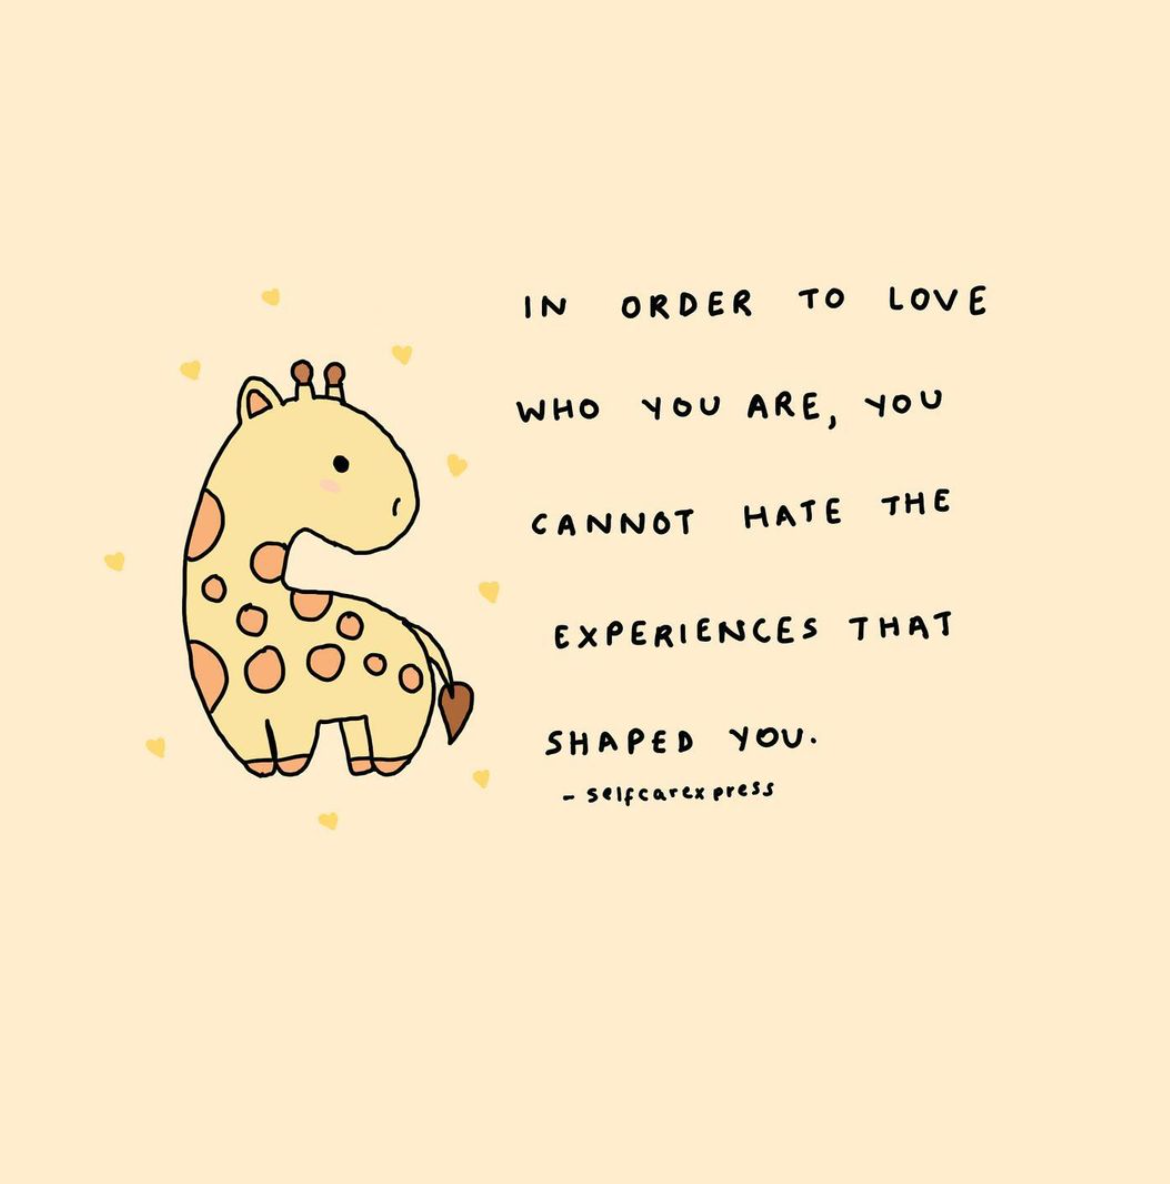 [Image] In order to love who you are, you cannot hate the experiences that shaped you.